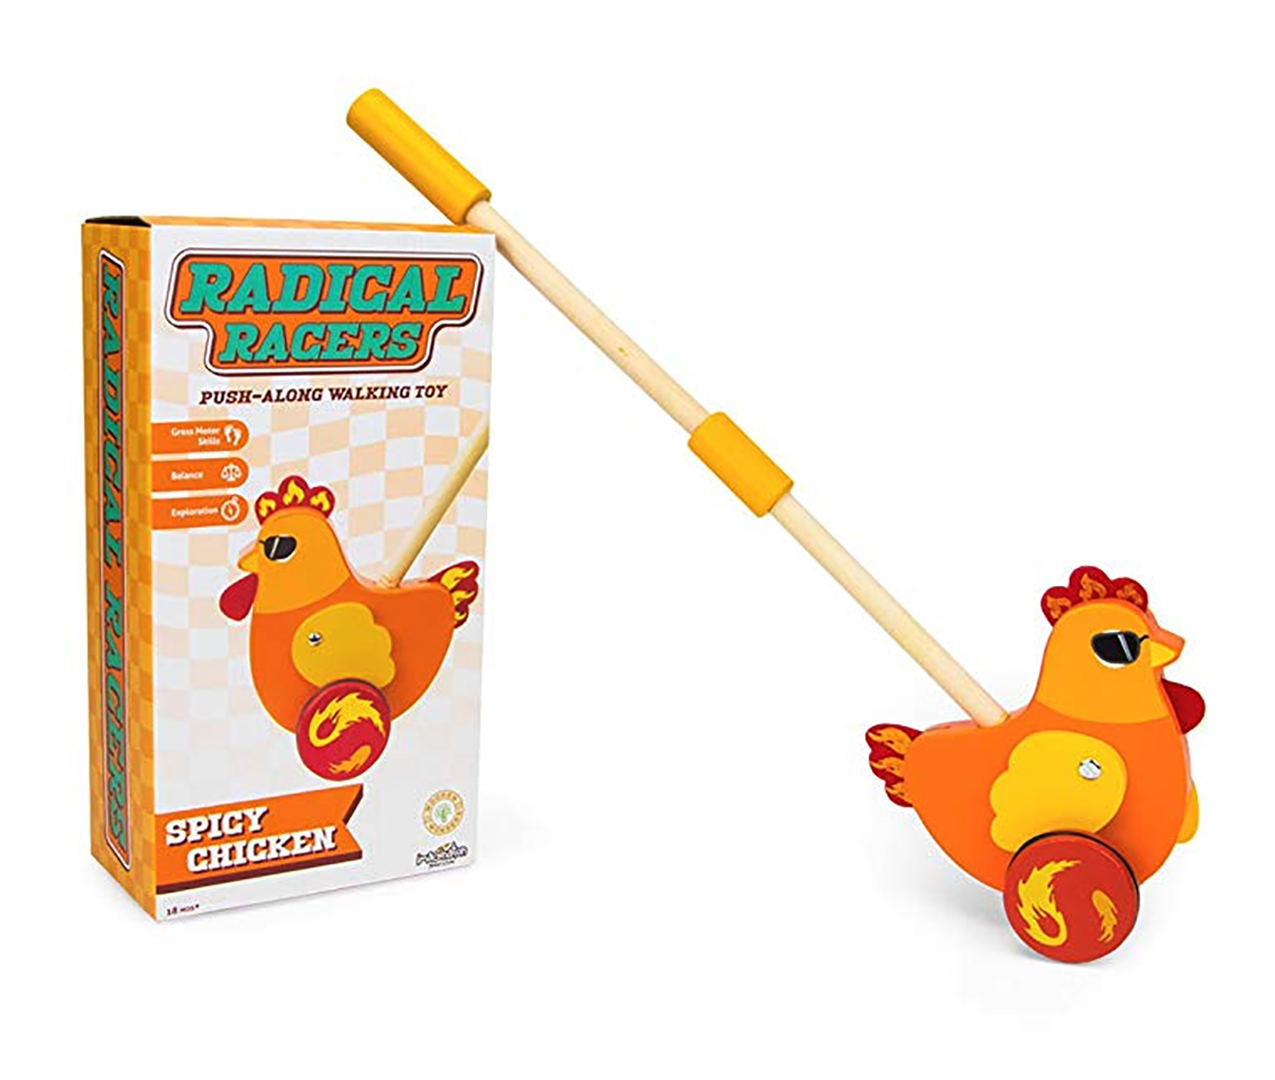 Radical Racers Spicy Chicken Wooden Push-Along Walking Toy by Imagination Generation